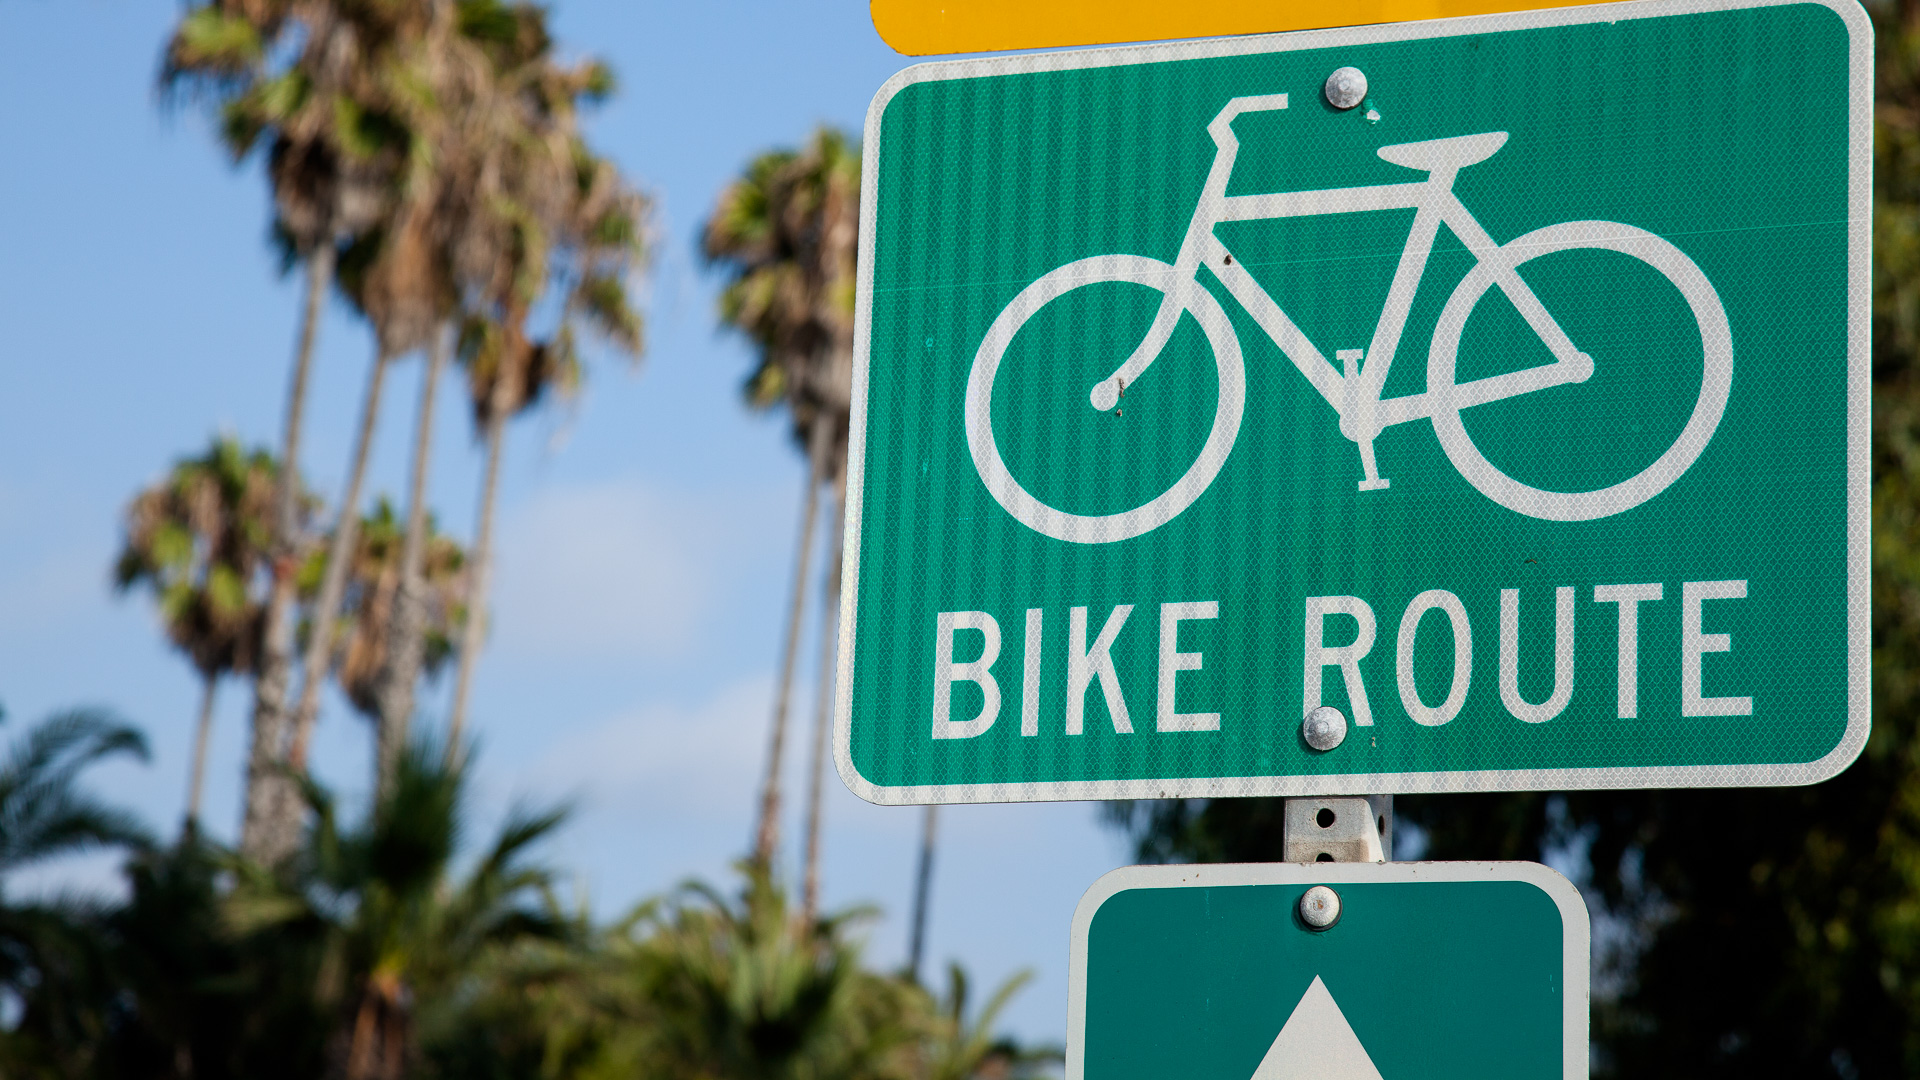 Bike_route_sign-1-2